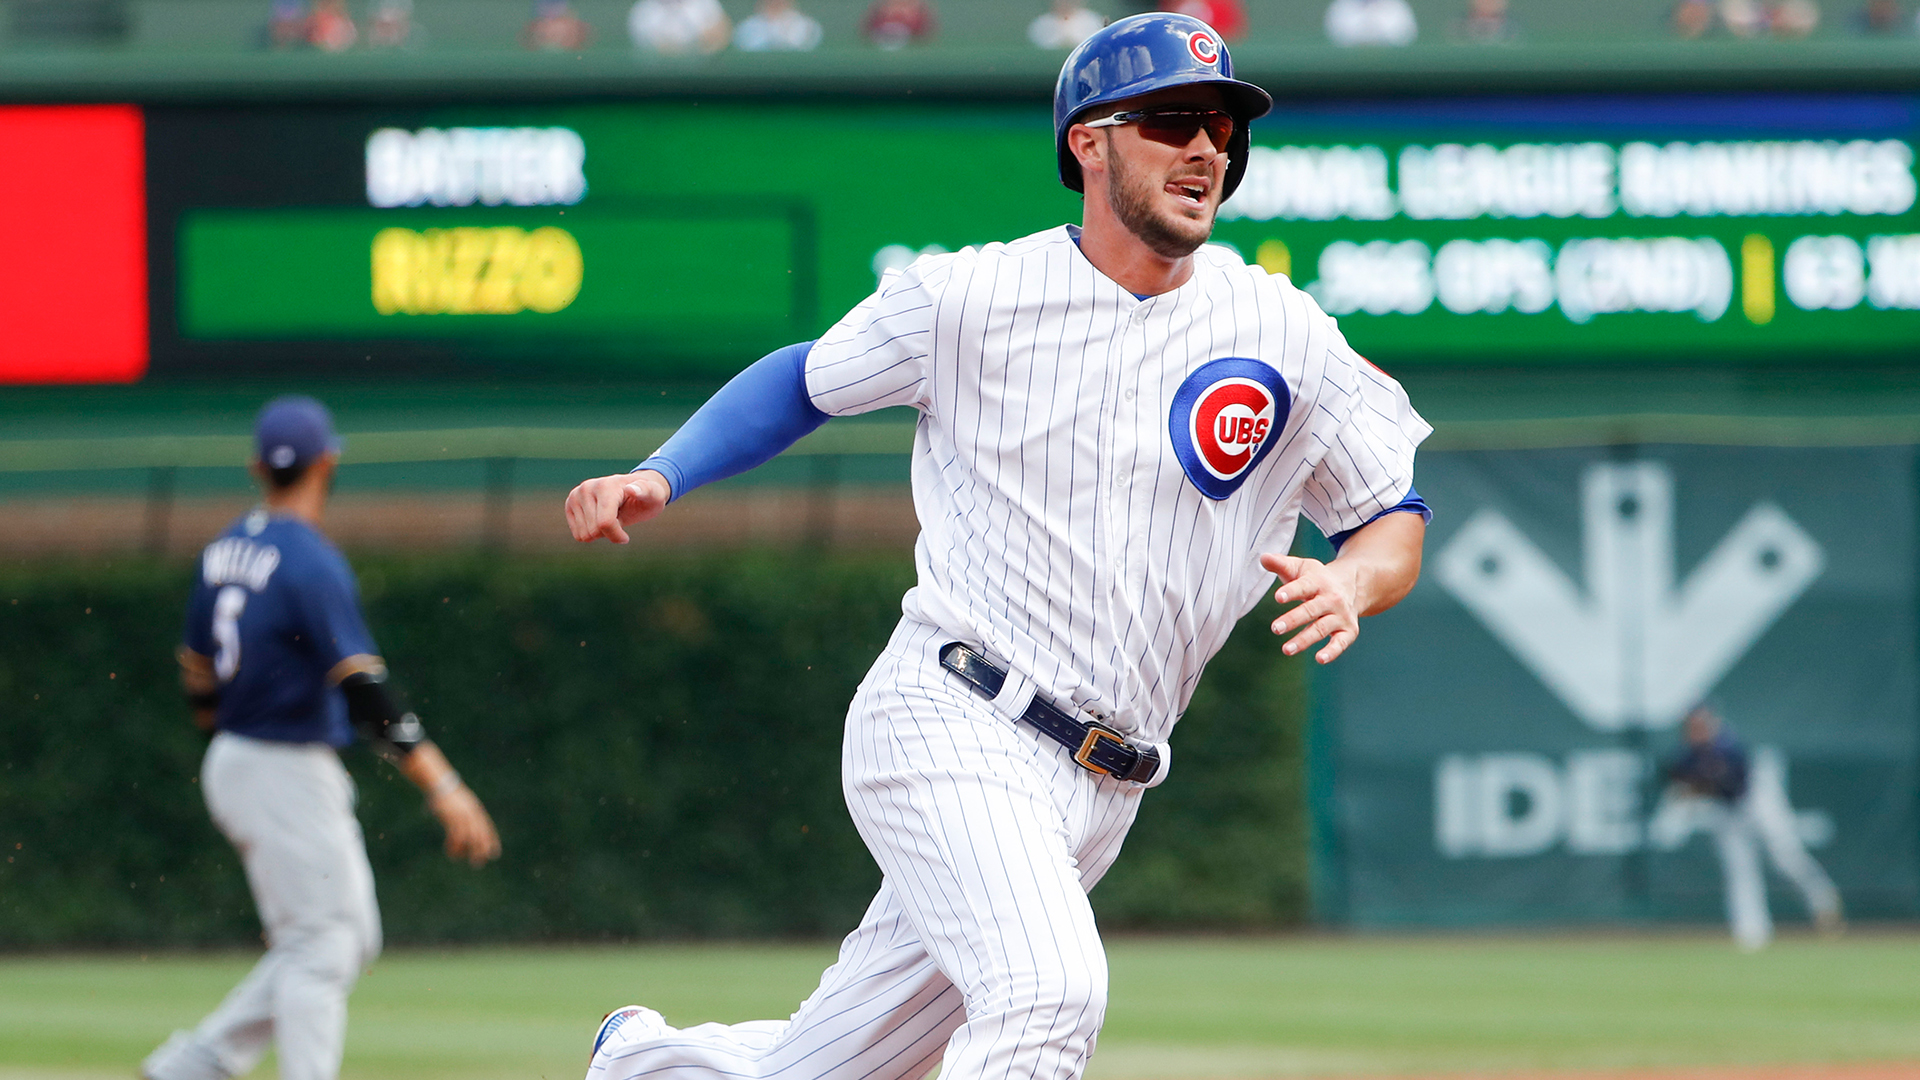 The OTHER Kris Bryant game